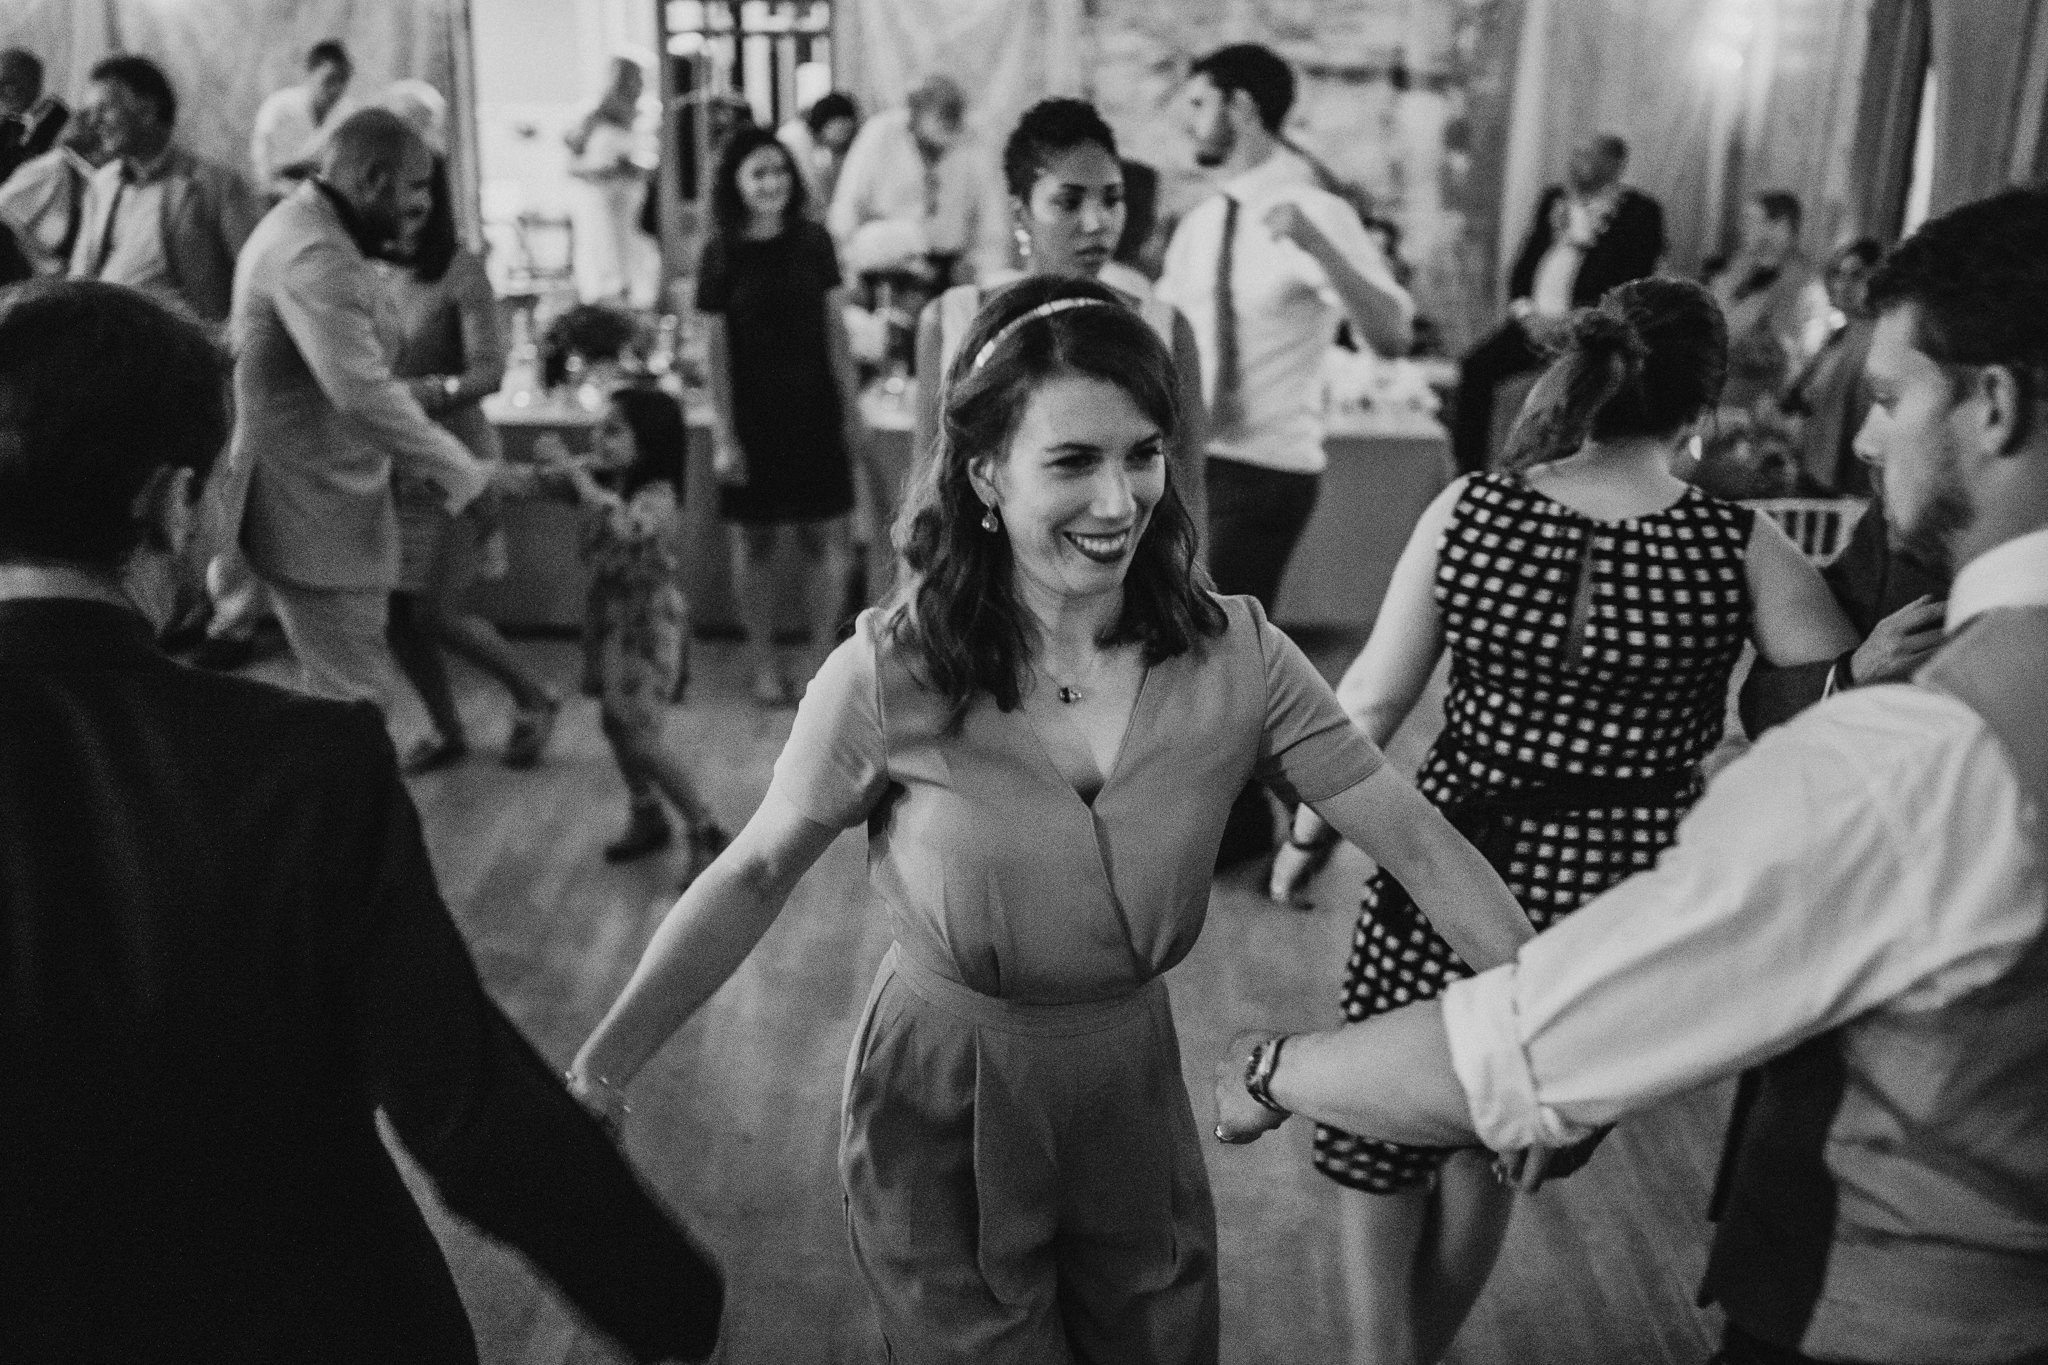 Wedding guests are dancing at the wedding party.